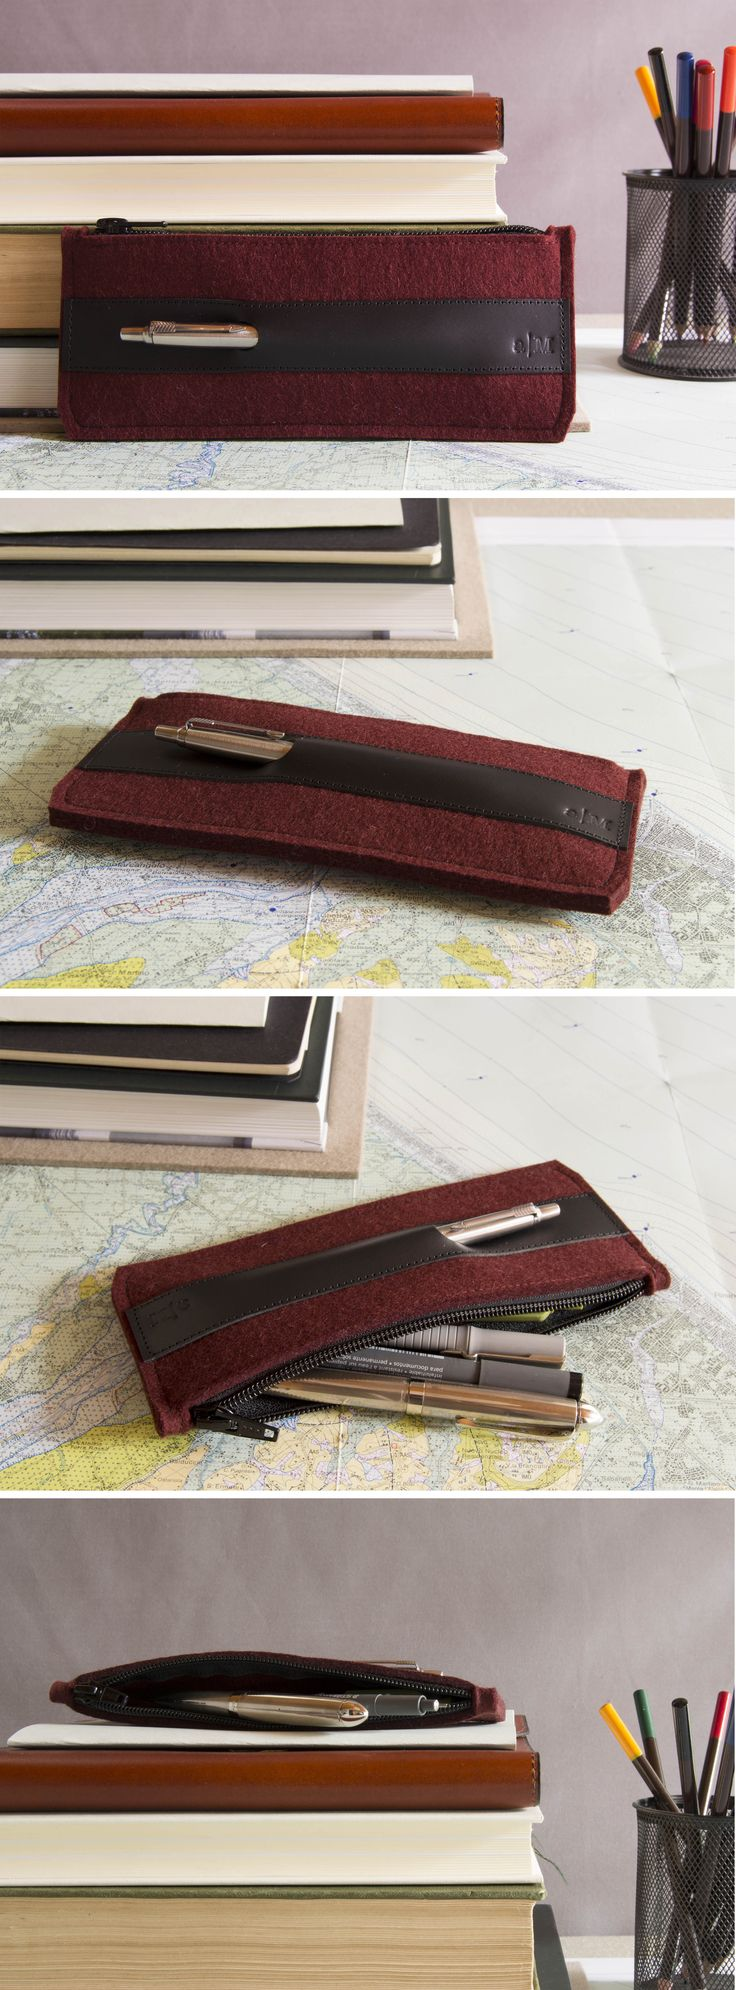 Stylish pencil case - 100% wool felt & vegetable tanned leather - made in Italy #penholder #pencilcase #case #feltcase #woolfelt #felt #feltaccessories #leather #feltandleather